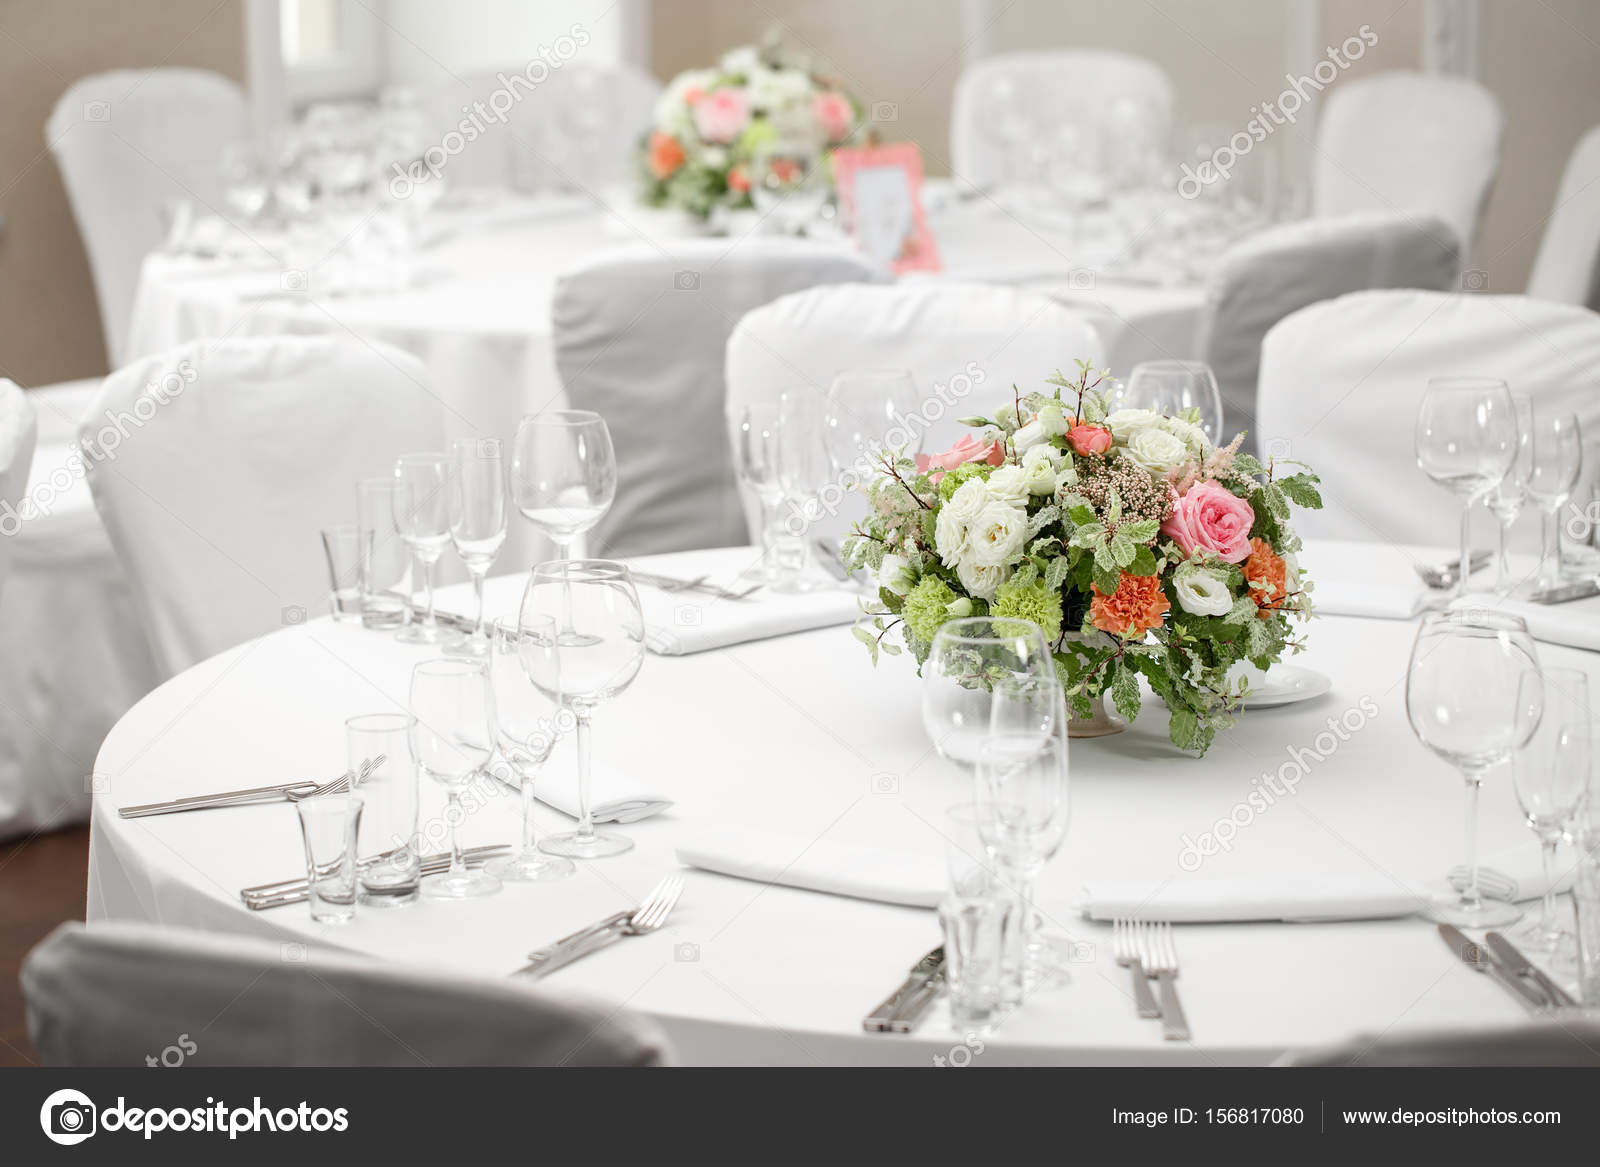 Table setting festive round tables ready for guests. \u2014 Stock Photo & table setting festive round tables ready for guests. \u2014 Stock Photo ...